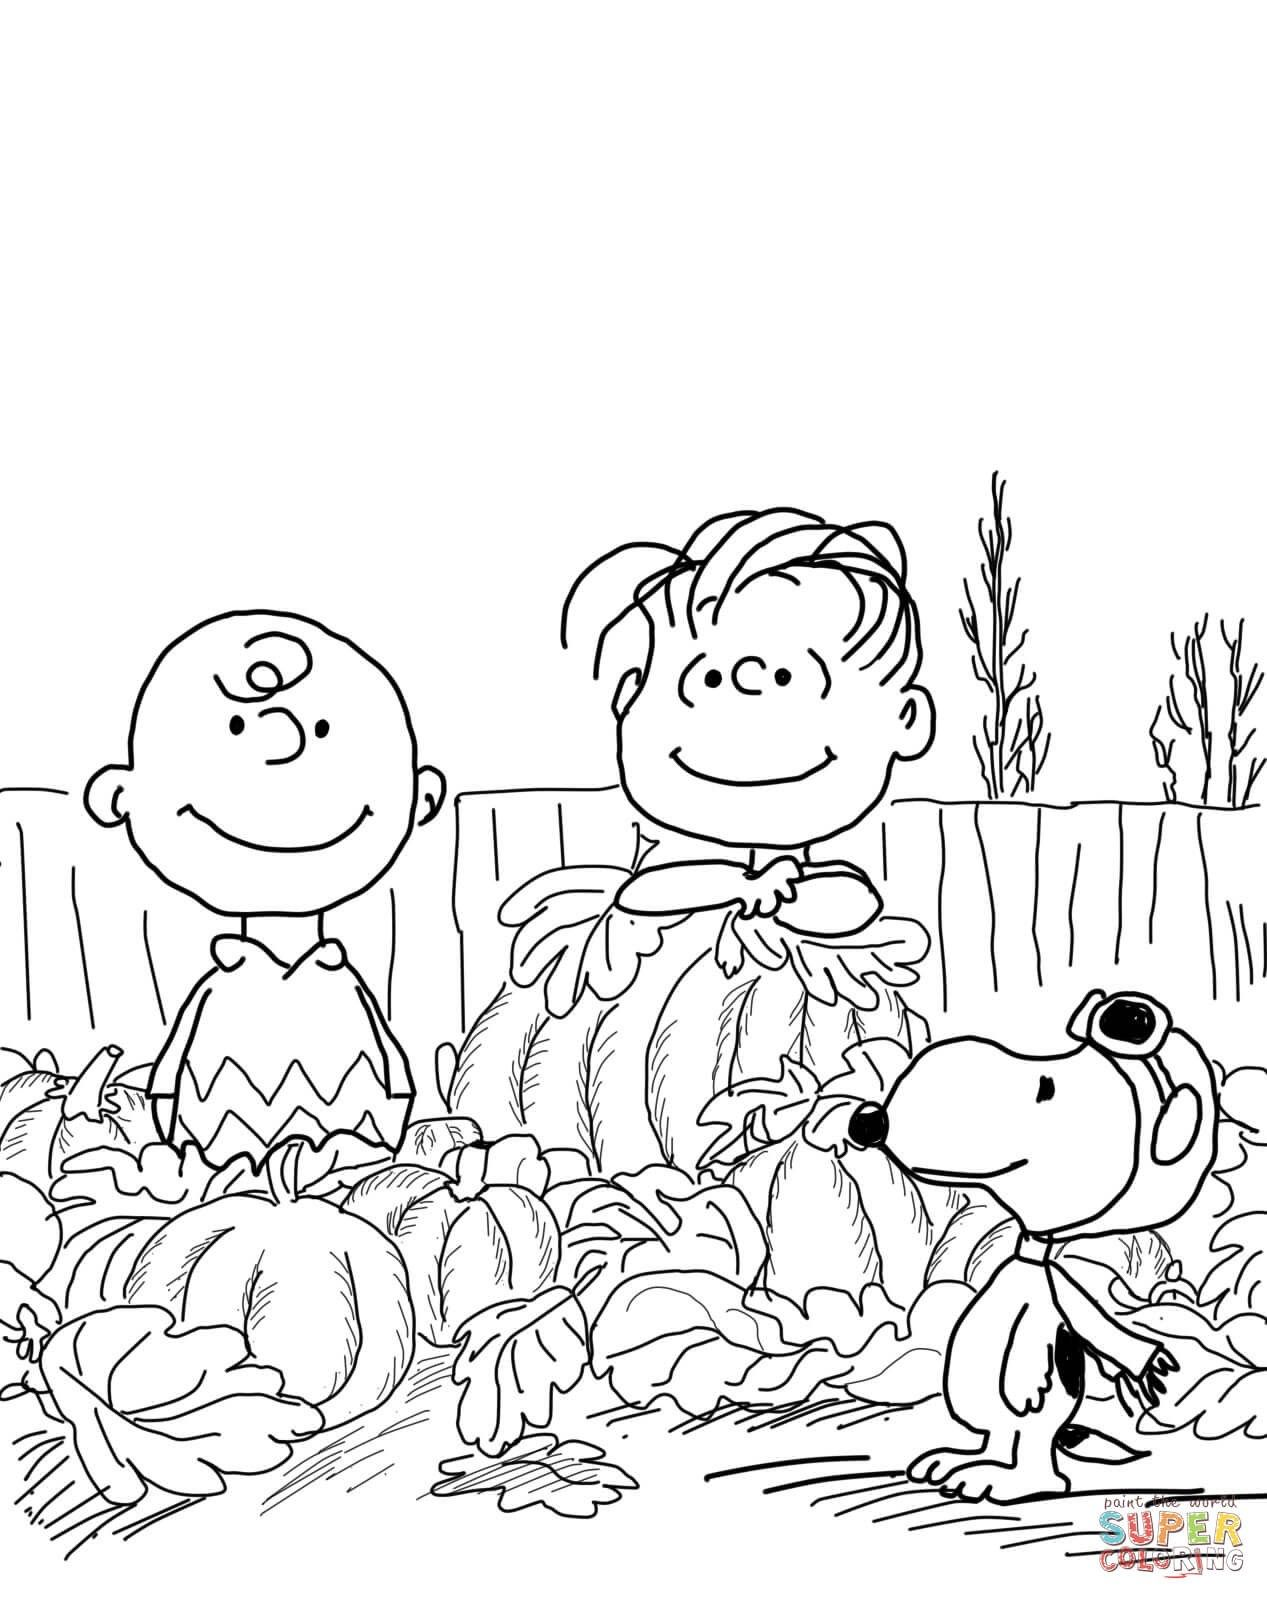 25 Marvelous Photo Of Peanuts Coloring Pages Davemelillo Com Thanksgiving Coloring Pages Snoopy Coloring Pages Pumpkin Coloring Pages